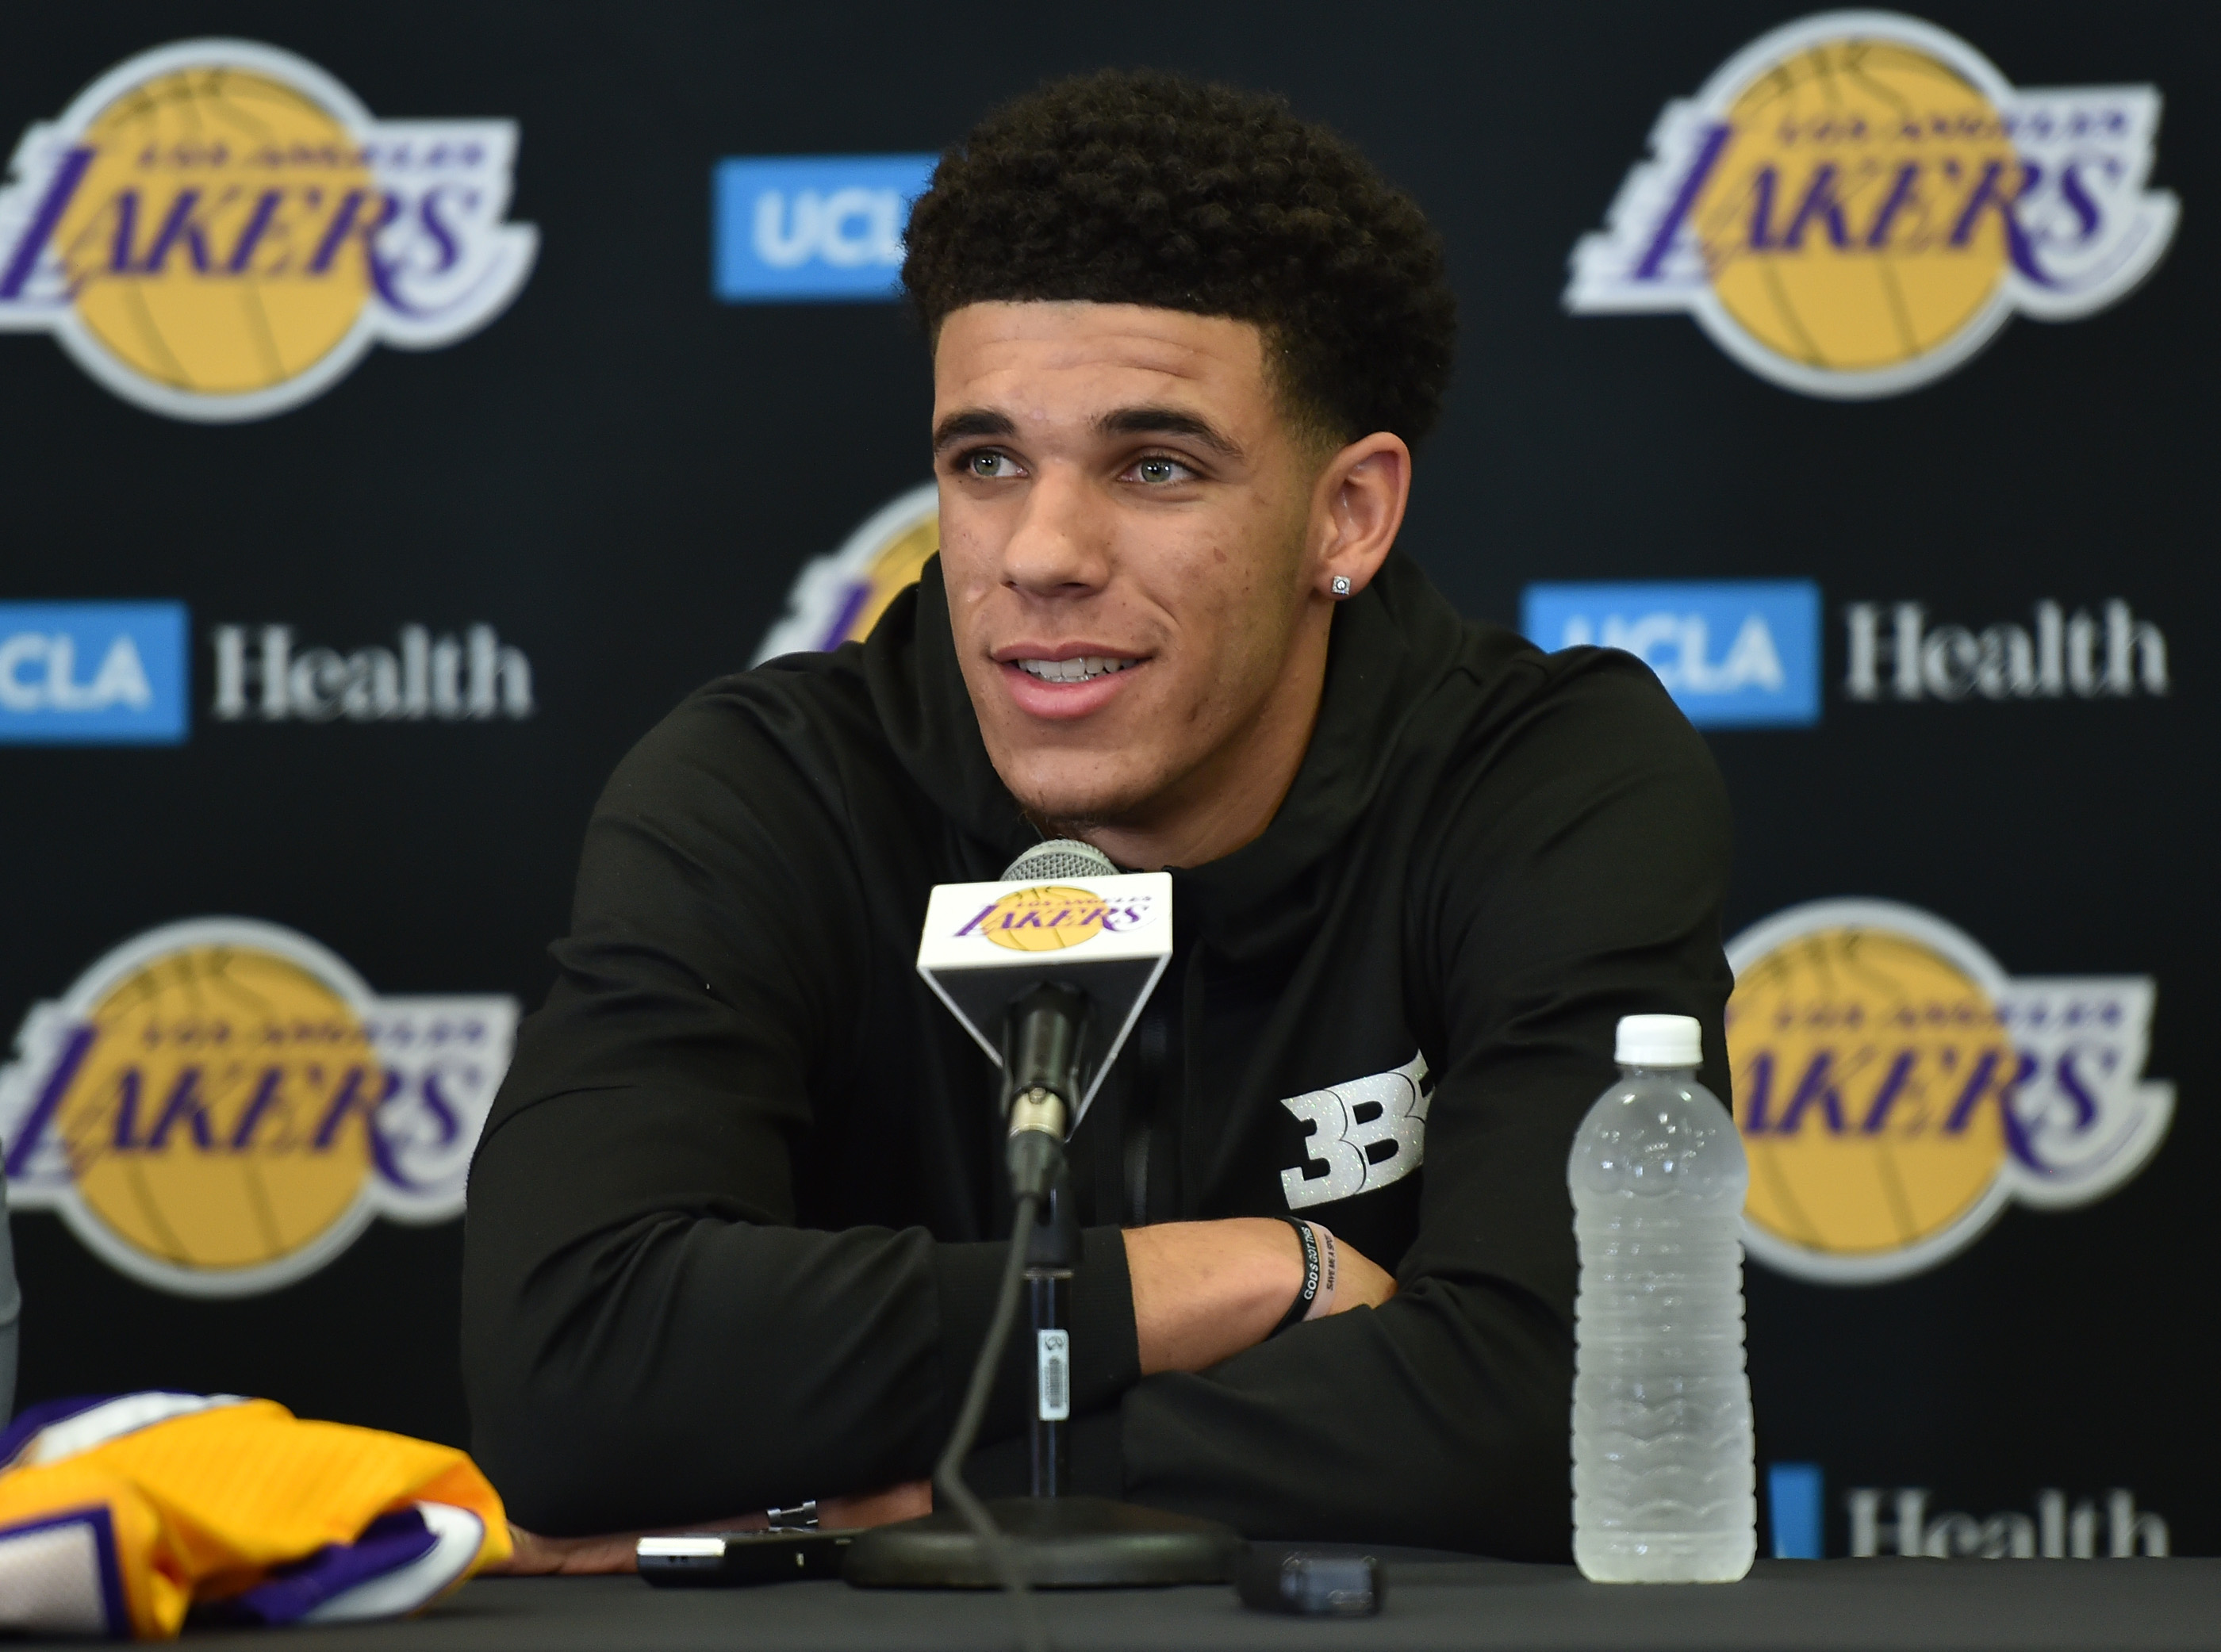 Lonzo Ball defends teammate Brandon Ingram over National Basketball Association 2k18 screen